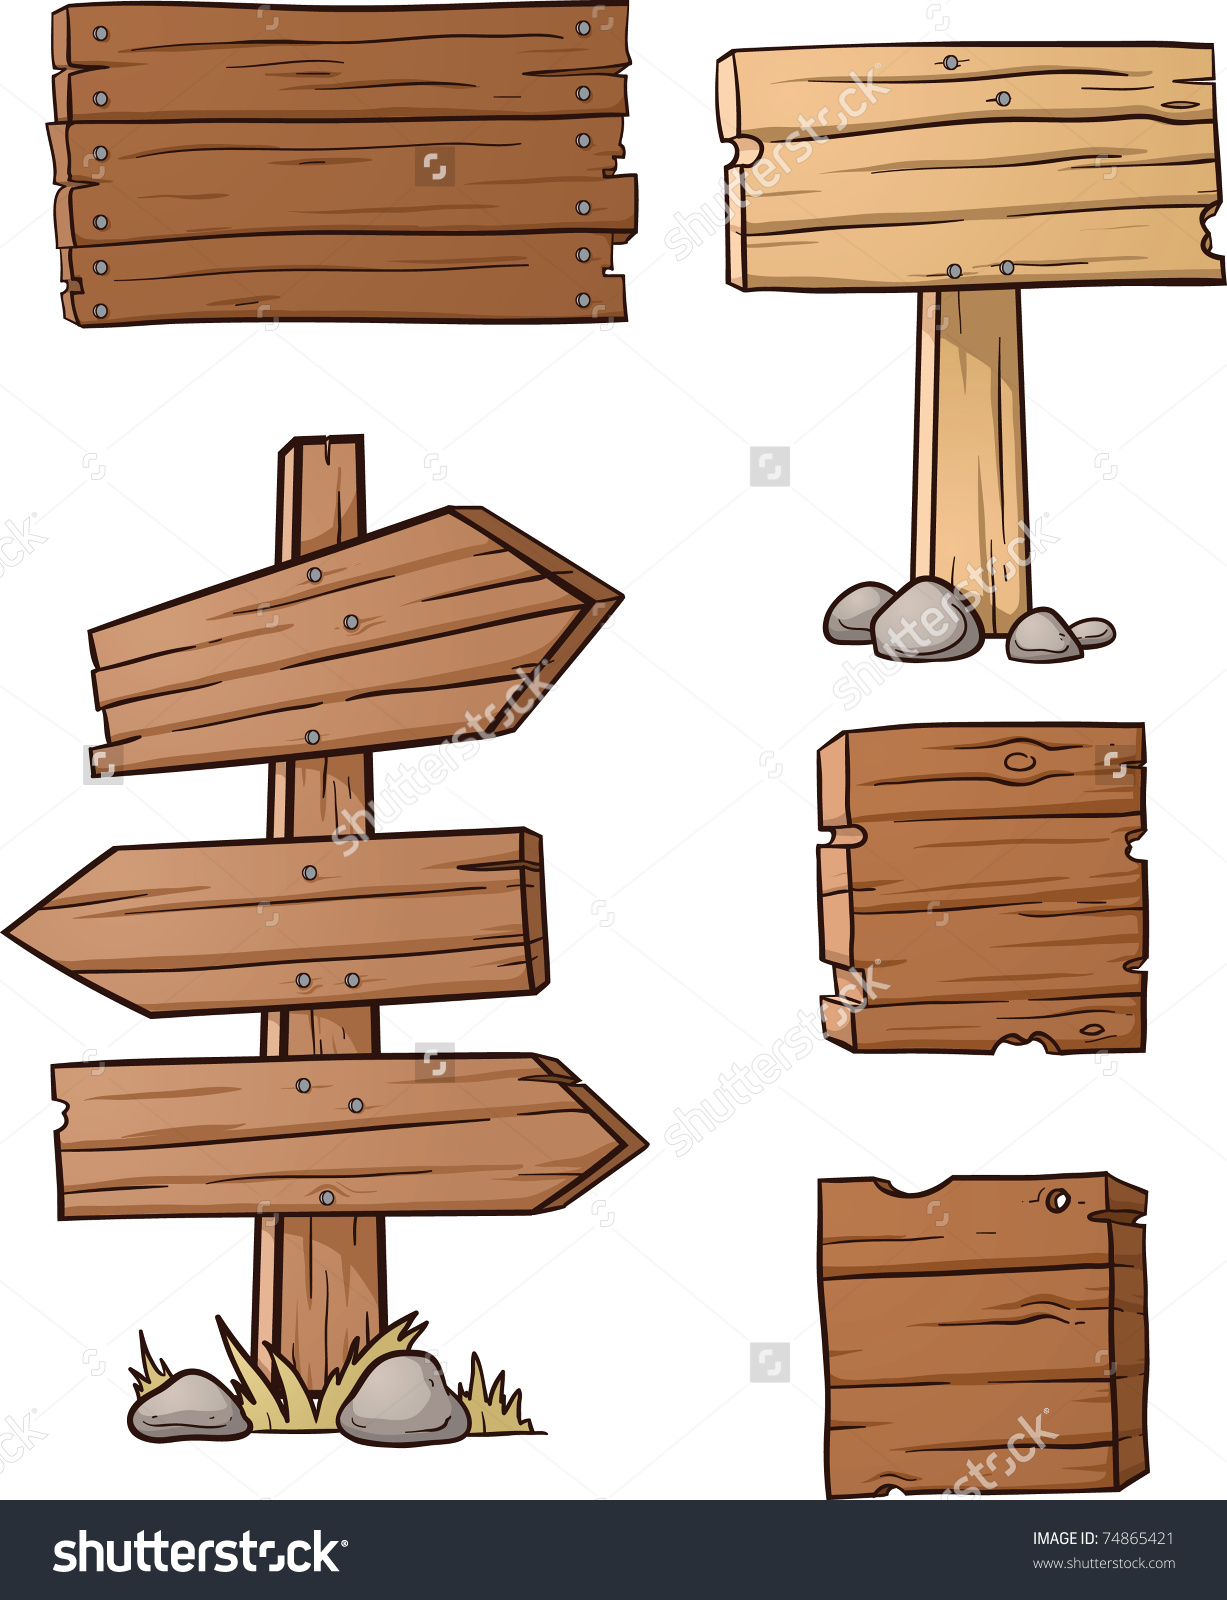 Planks clipart signage With wooden illustration wooden vector